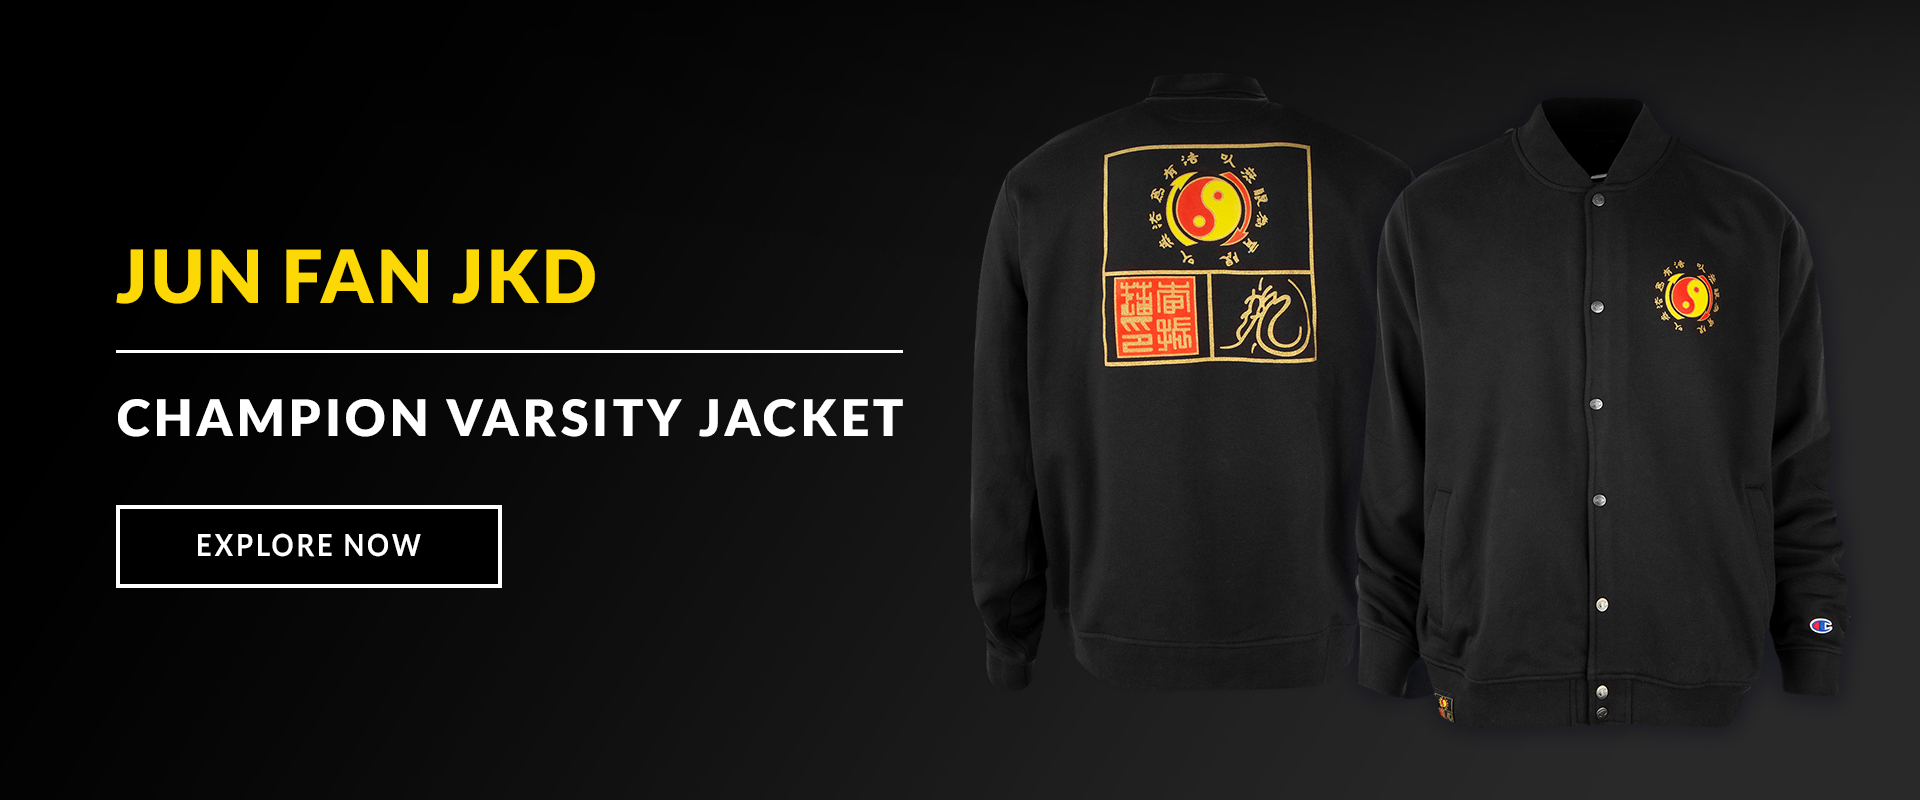 Bruce Lee Champion Varsity Jacket